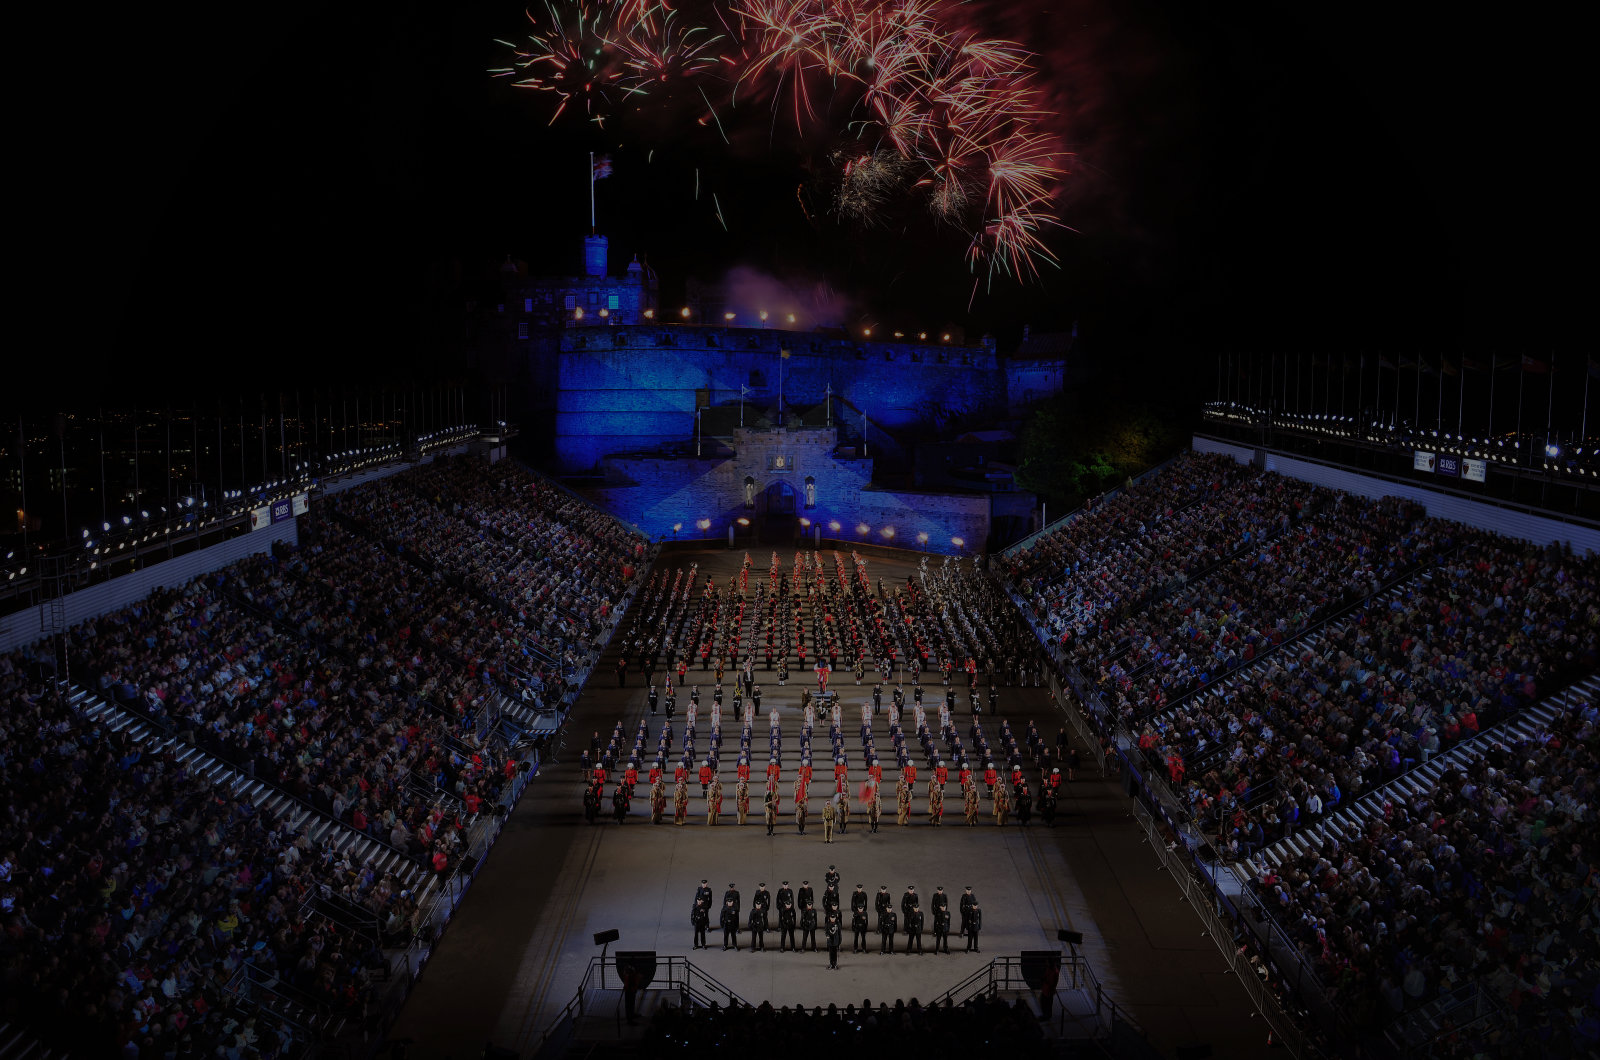 Royal edinburgh military tattoo (2) full tinted